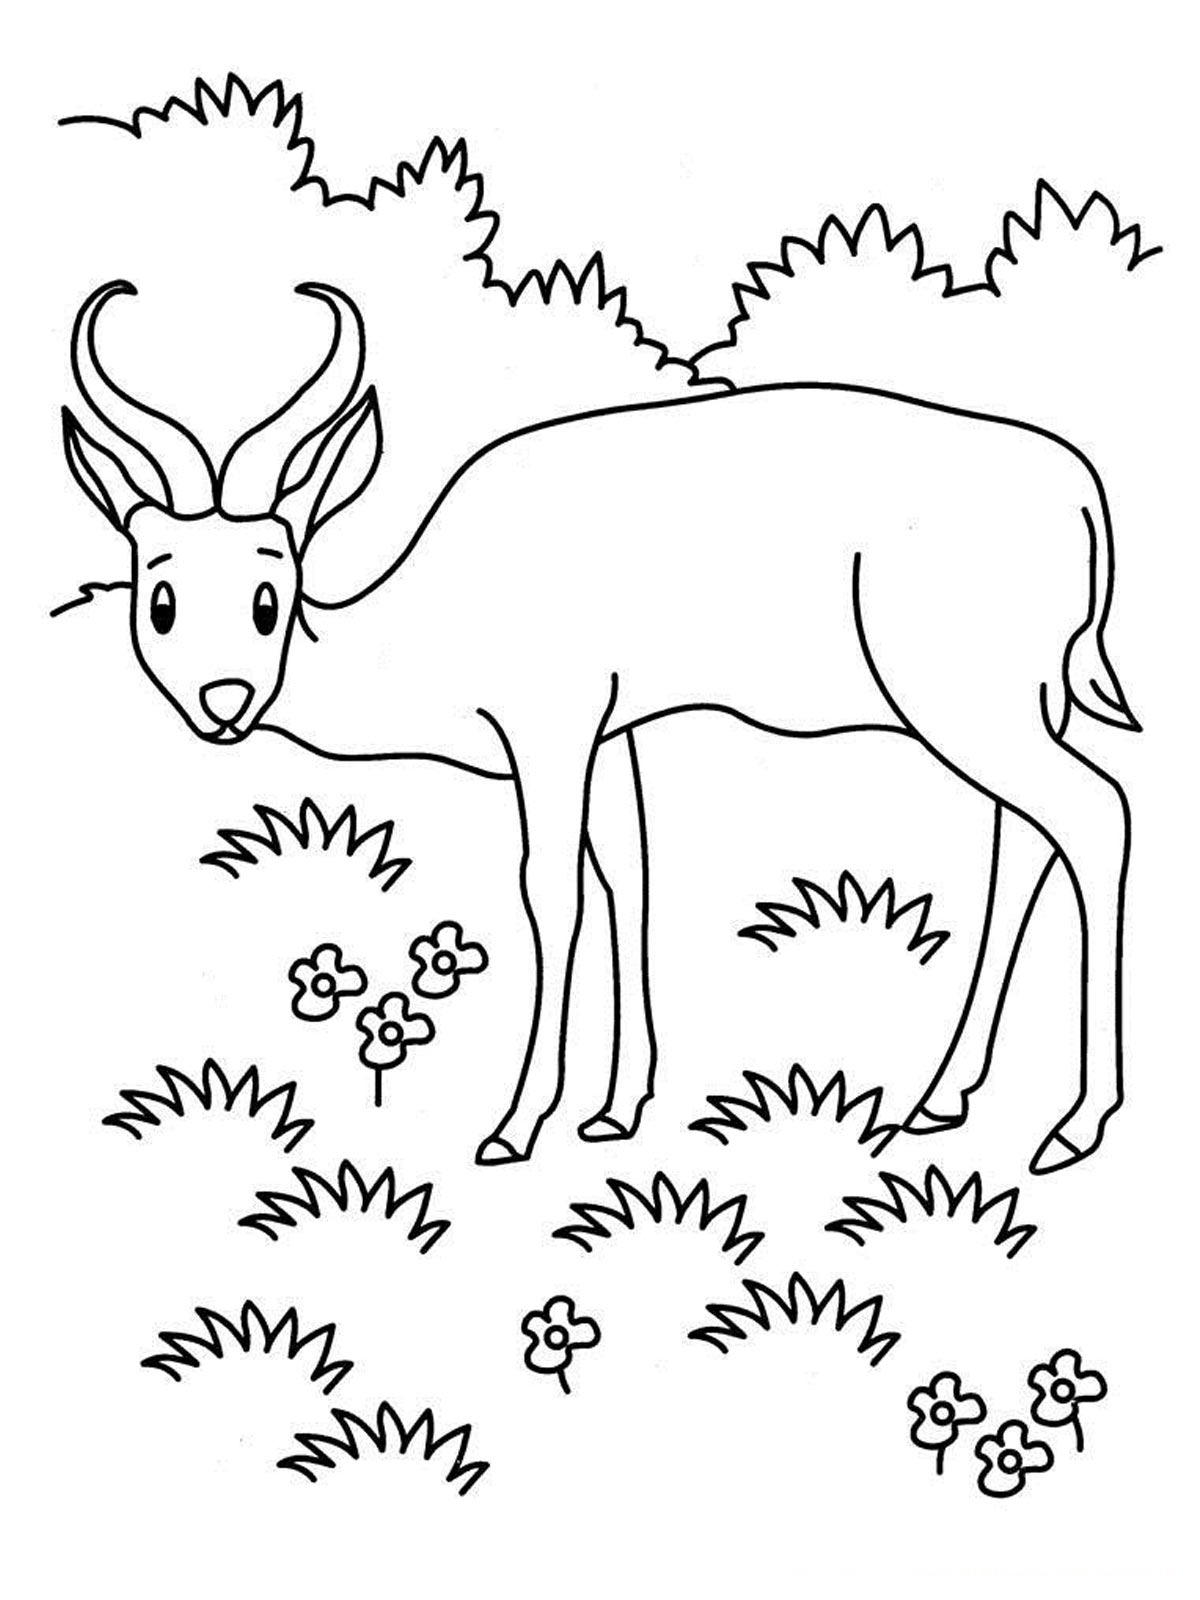 Grassland Coloring Coloring Pages